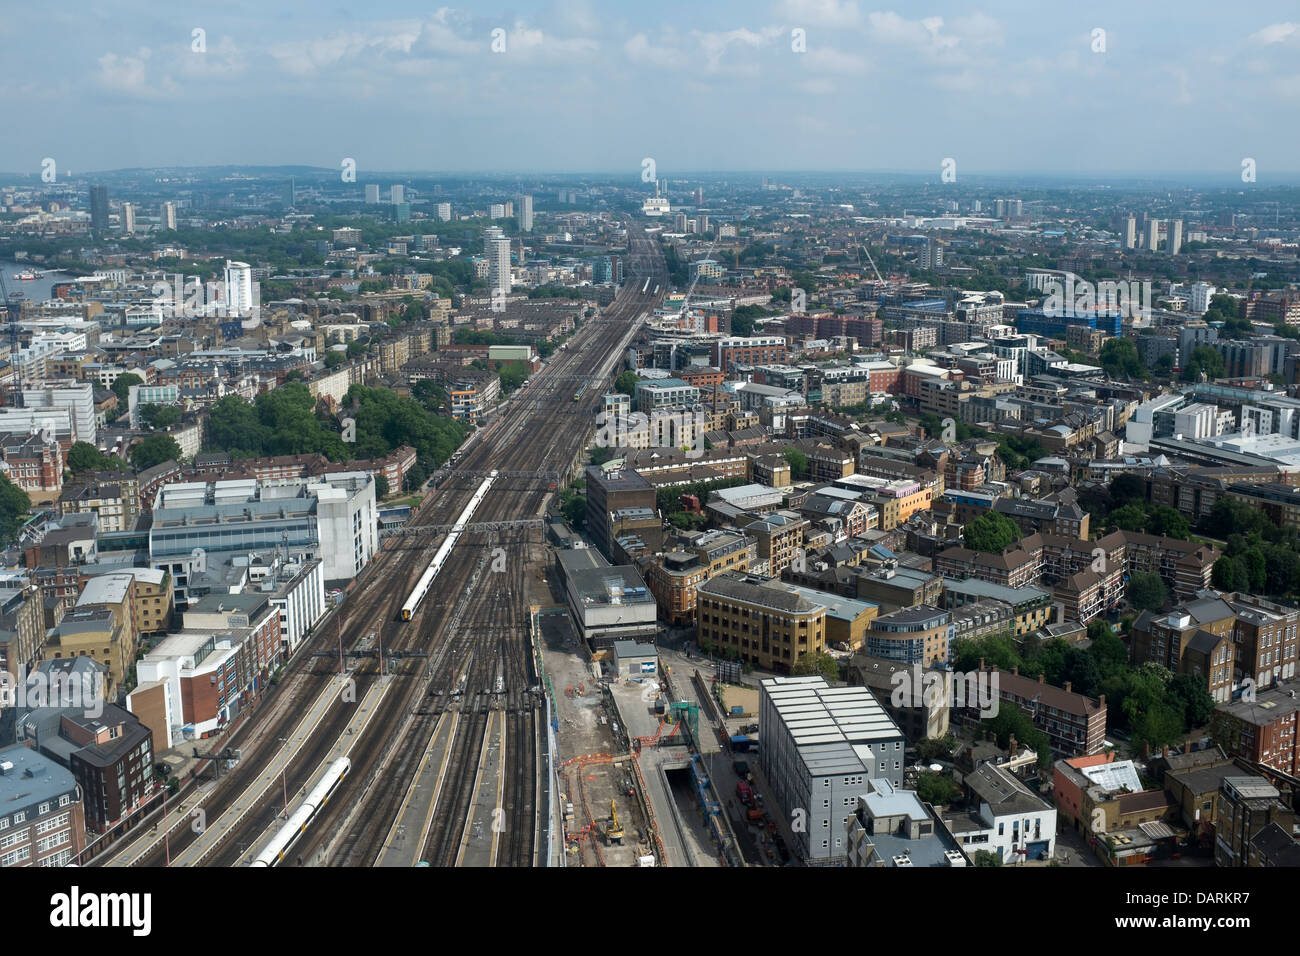 View south east over train lines from the Shard - Stock Image